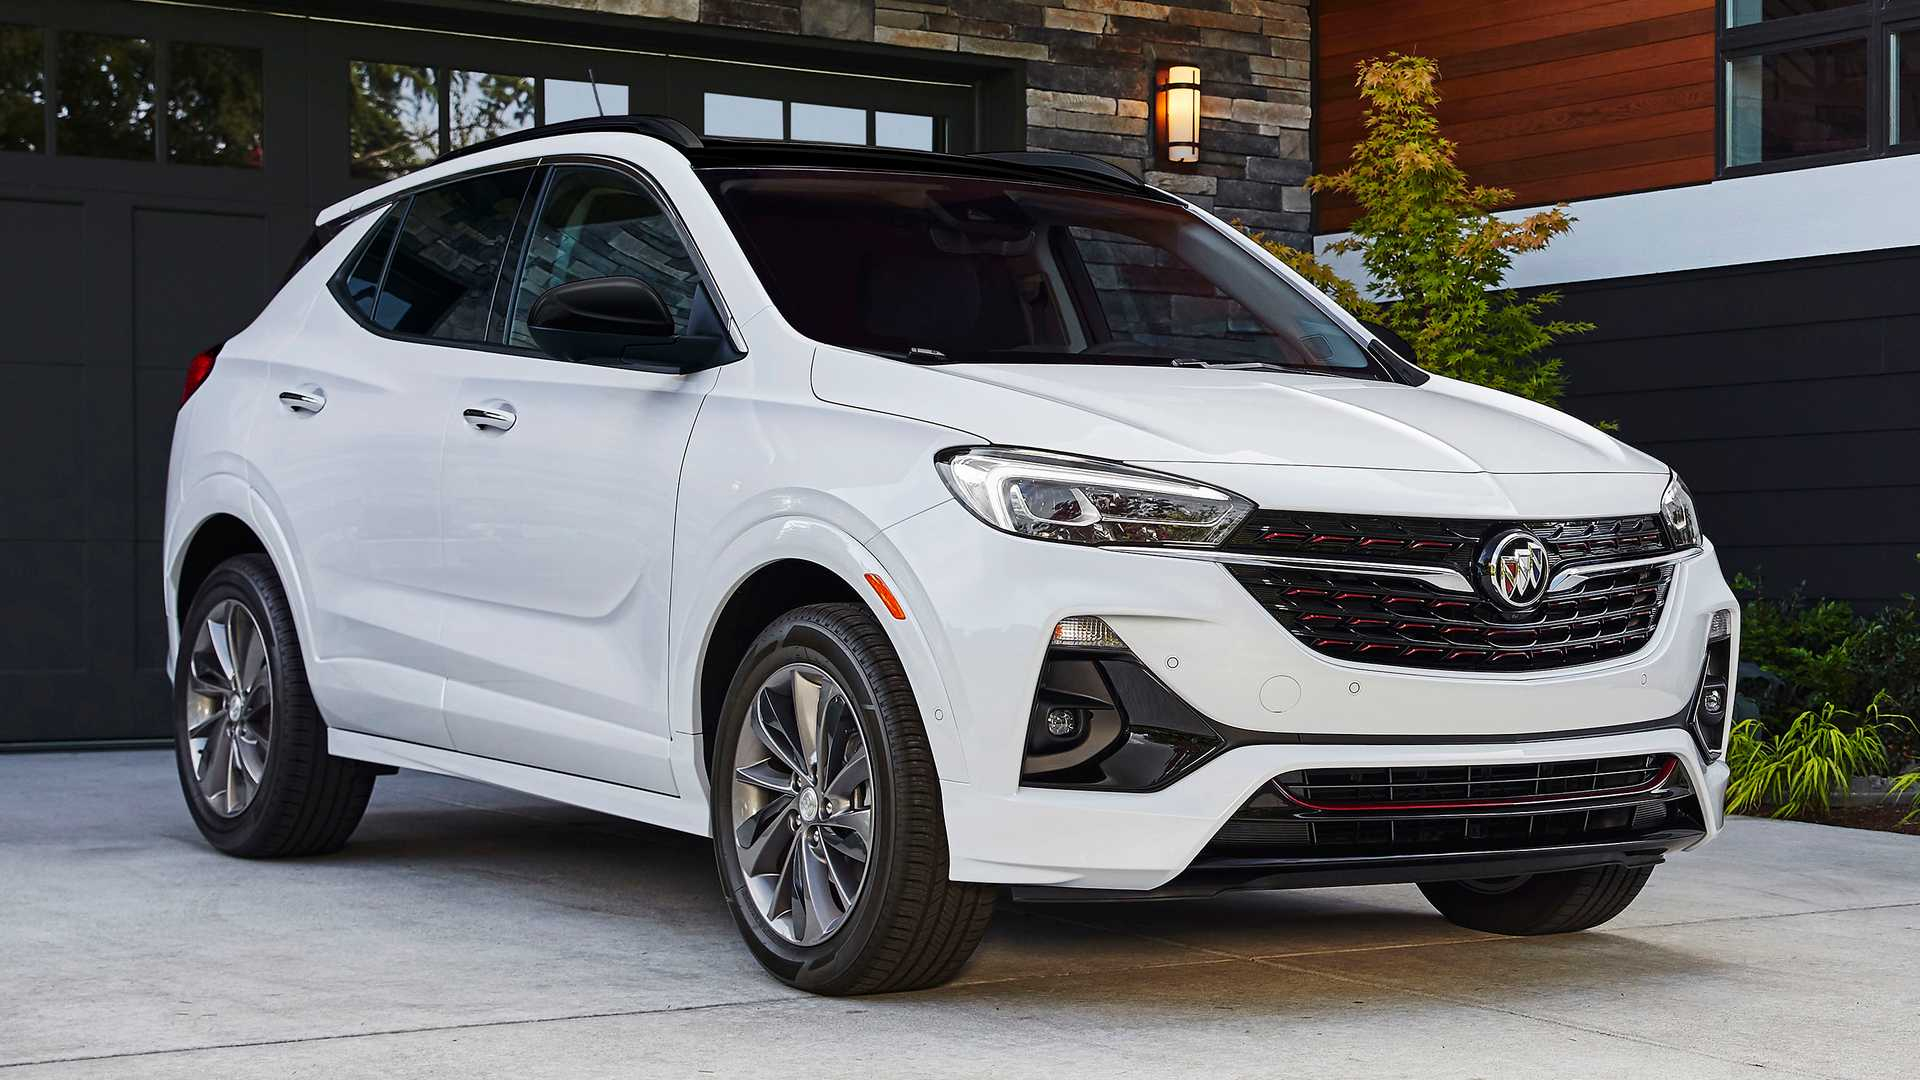 2020 Buick Encore Gx Makes Up To 155 Hp, Gets Sport Touring Pack 2021 Buick Encore Gx Used, Weight, 0-60